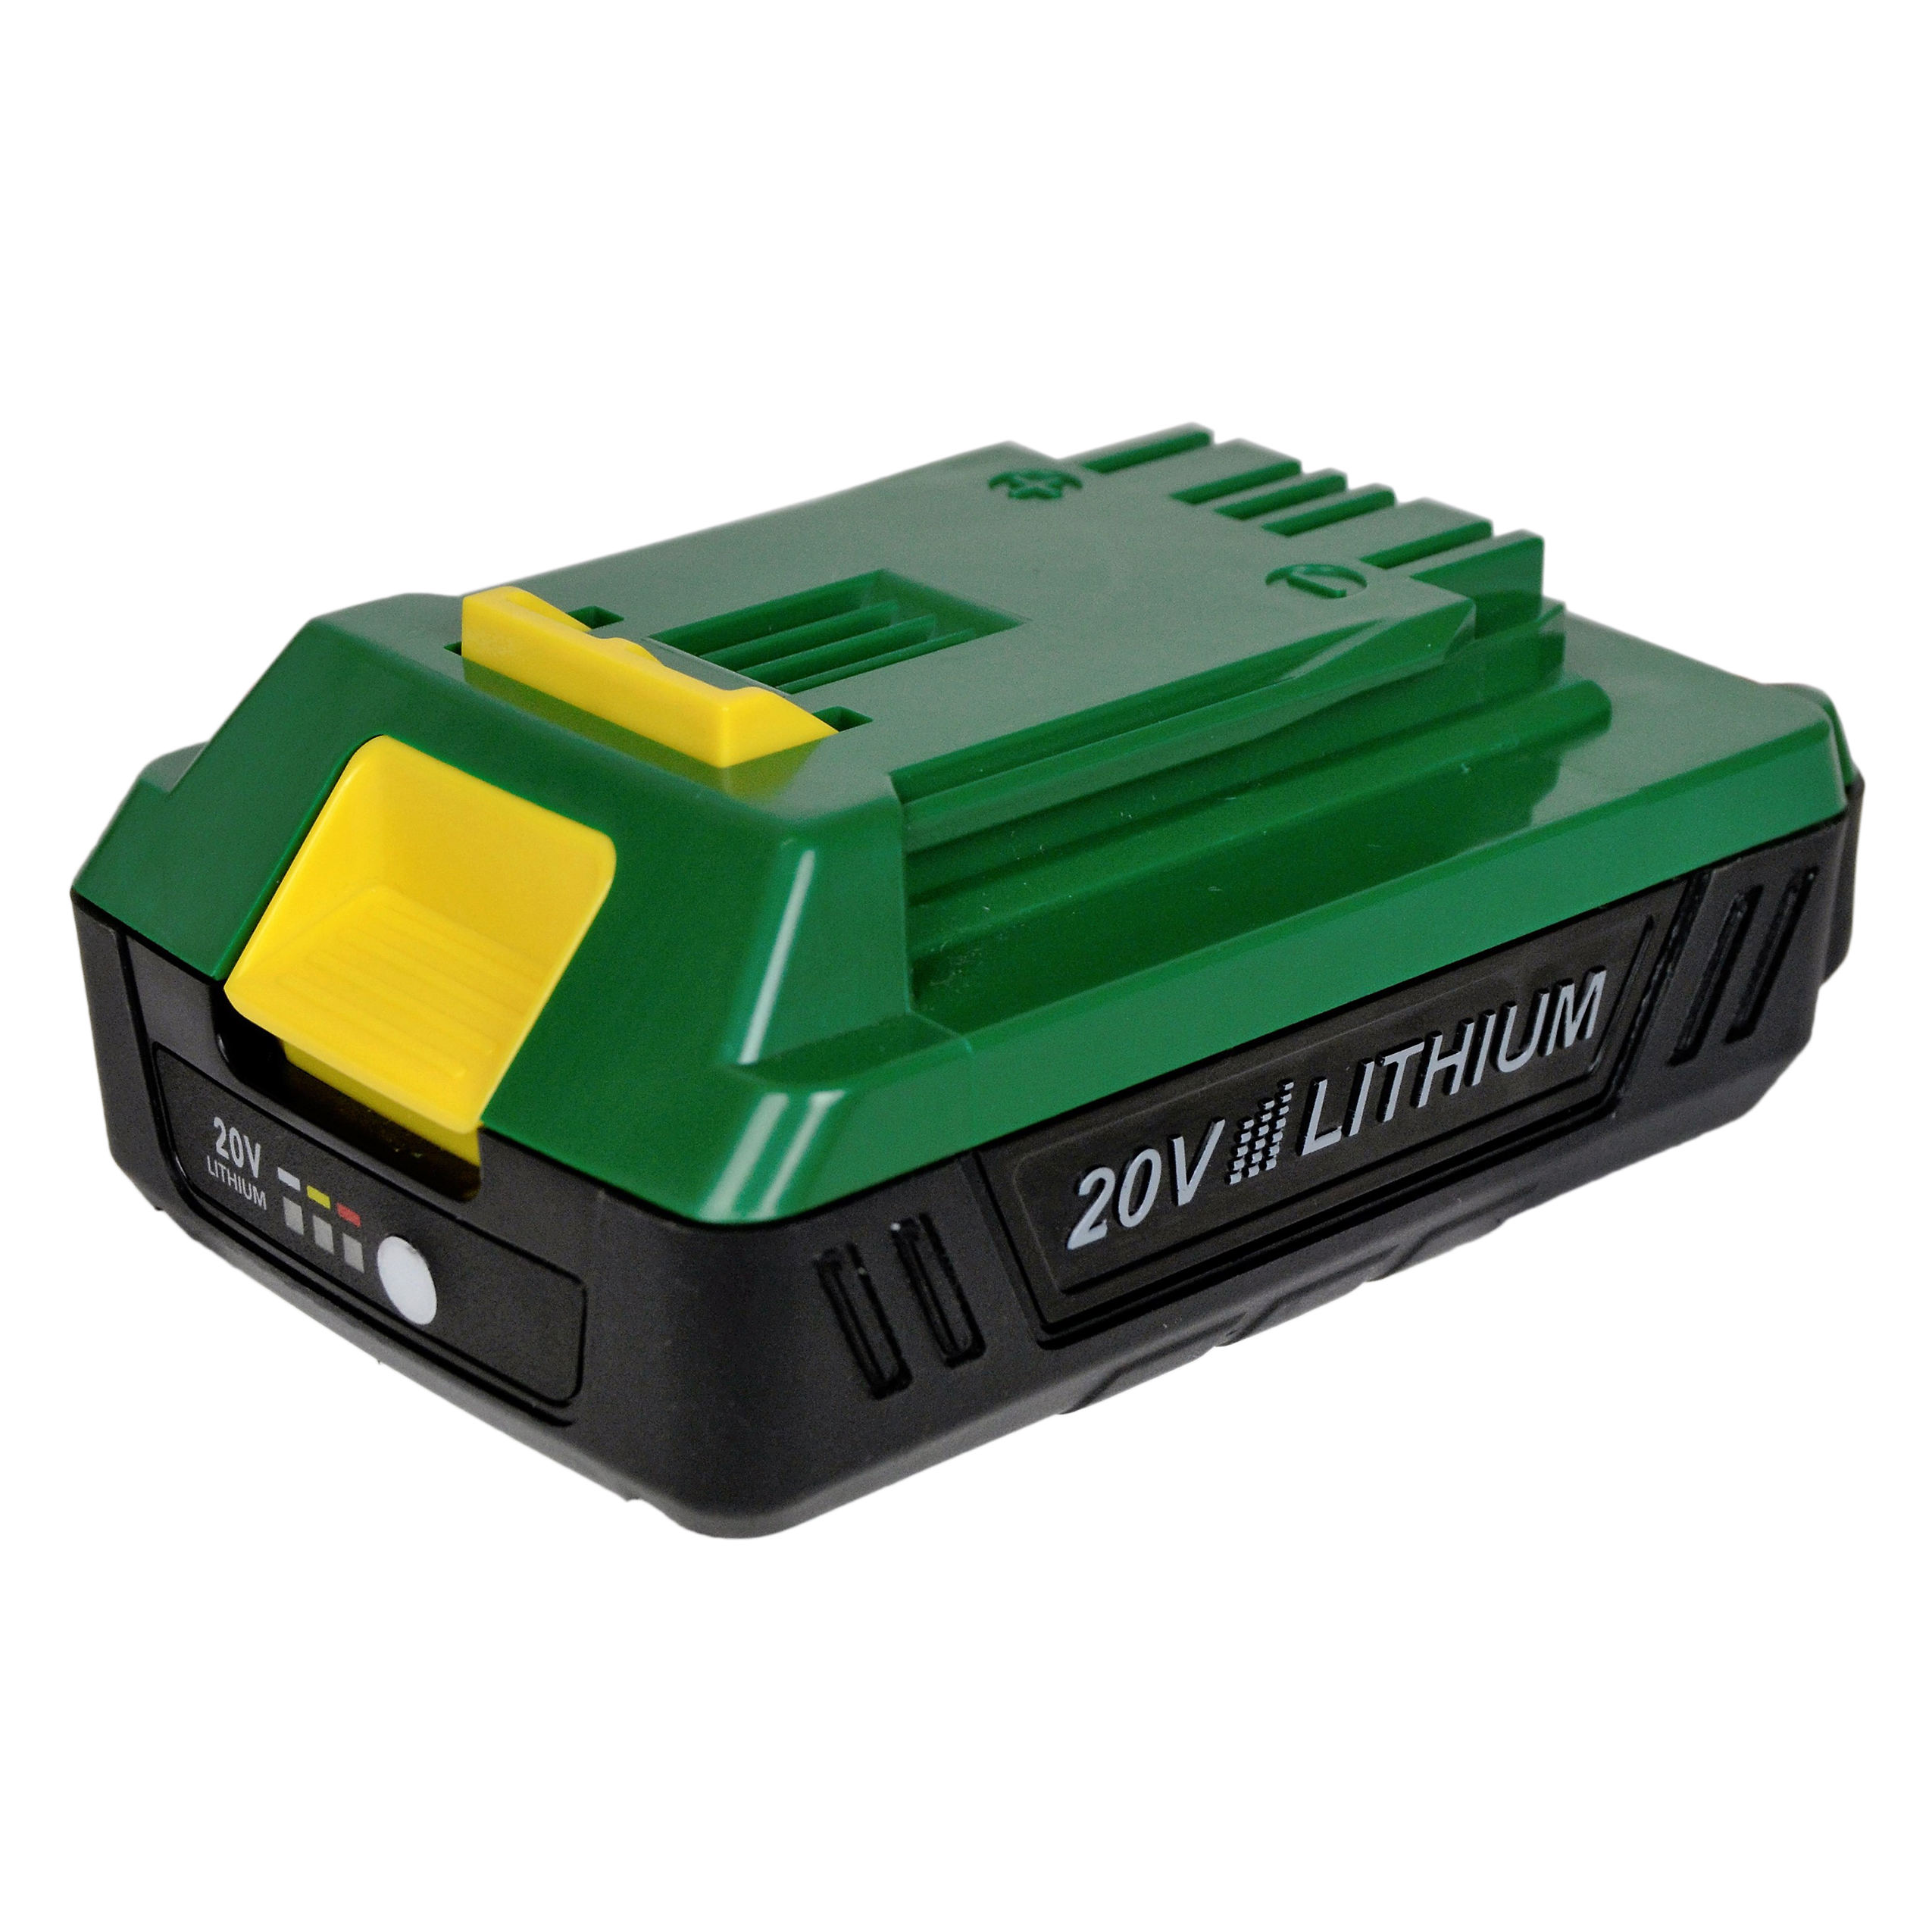 Weed Eater WE20VRB 20V Volt Lithium-Ion Battery Pack 967600101